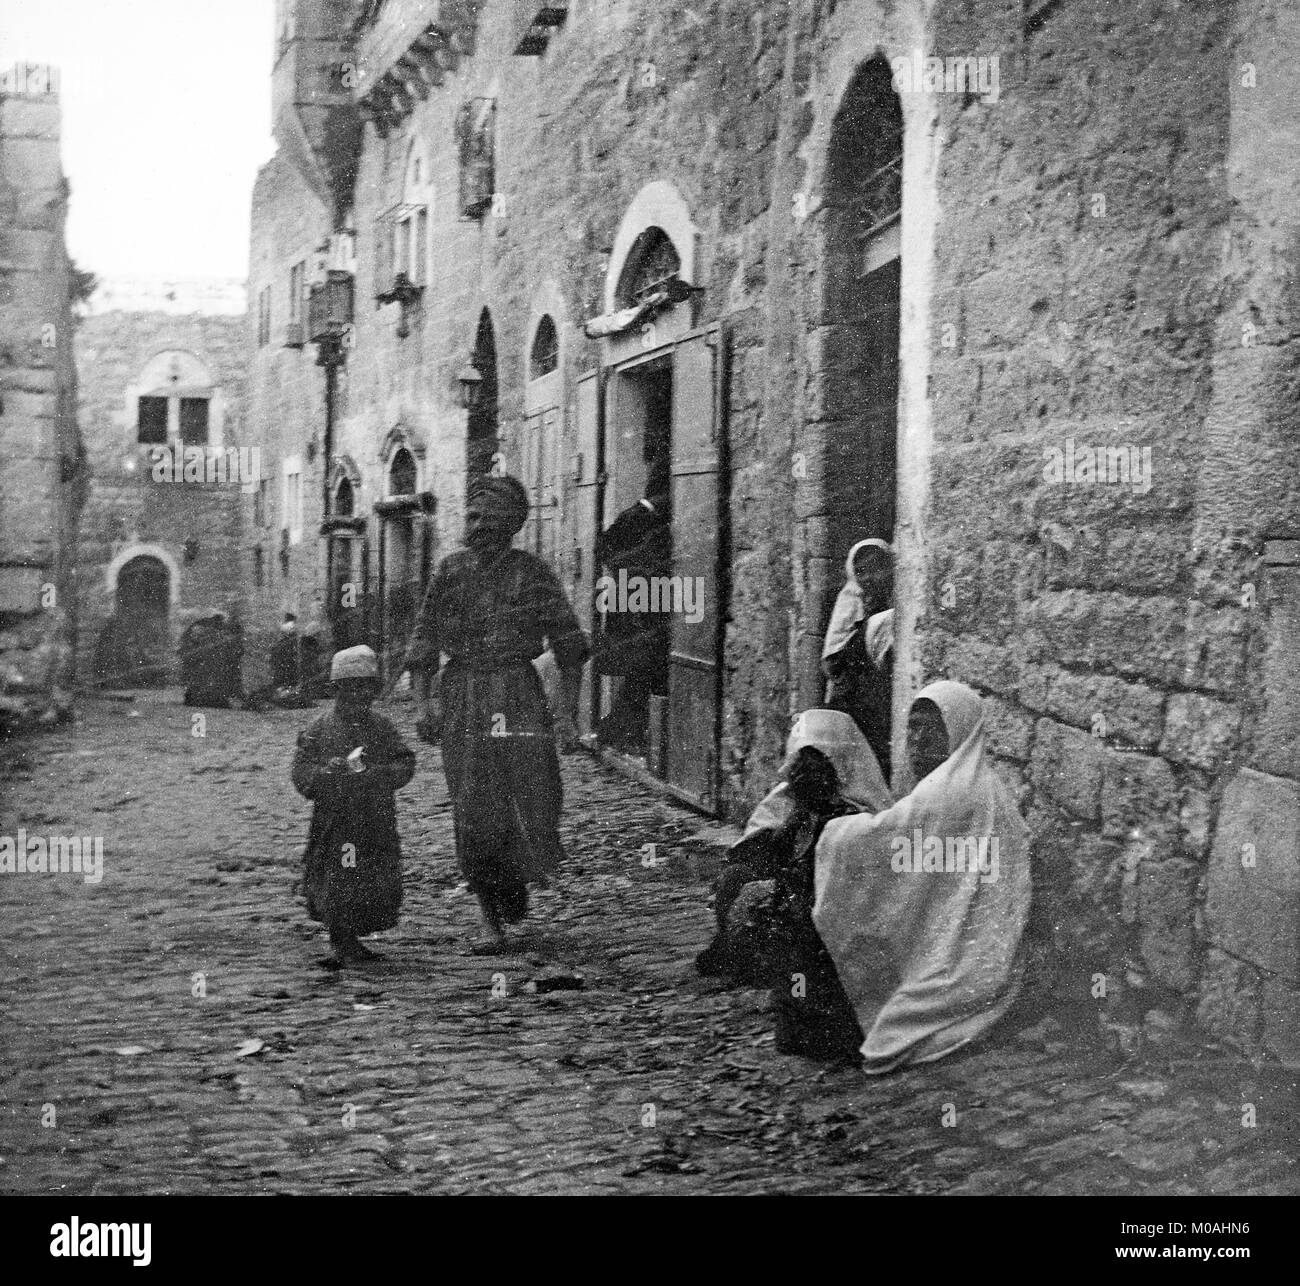 A late 19th or early 20th century black and white photograph showing a street scene in bethlehem in palestine or modern day israel